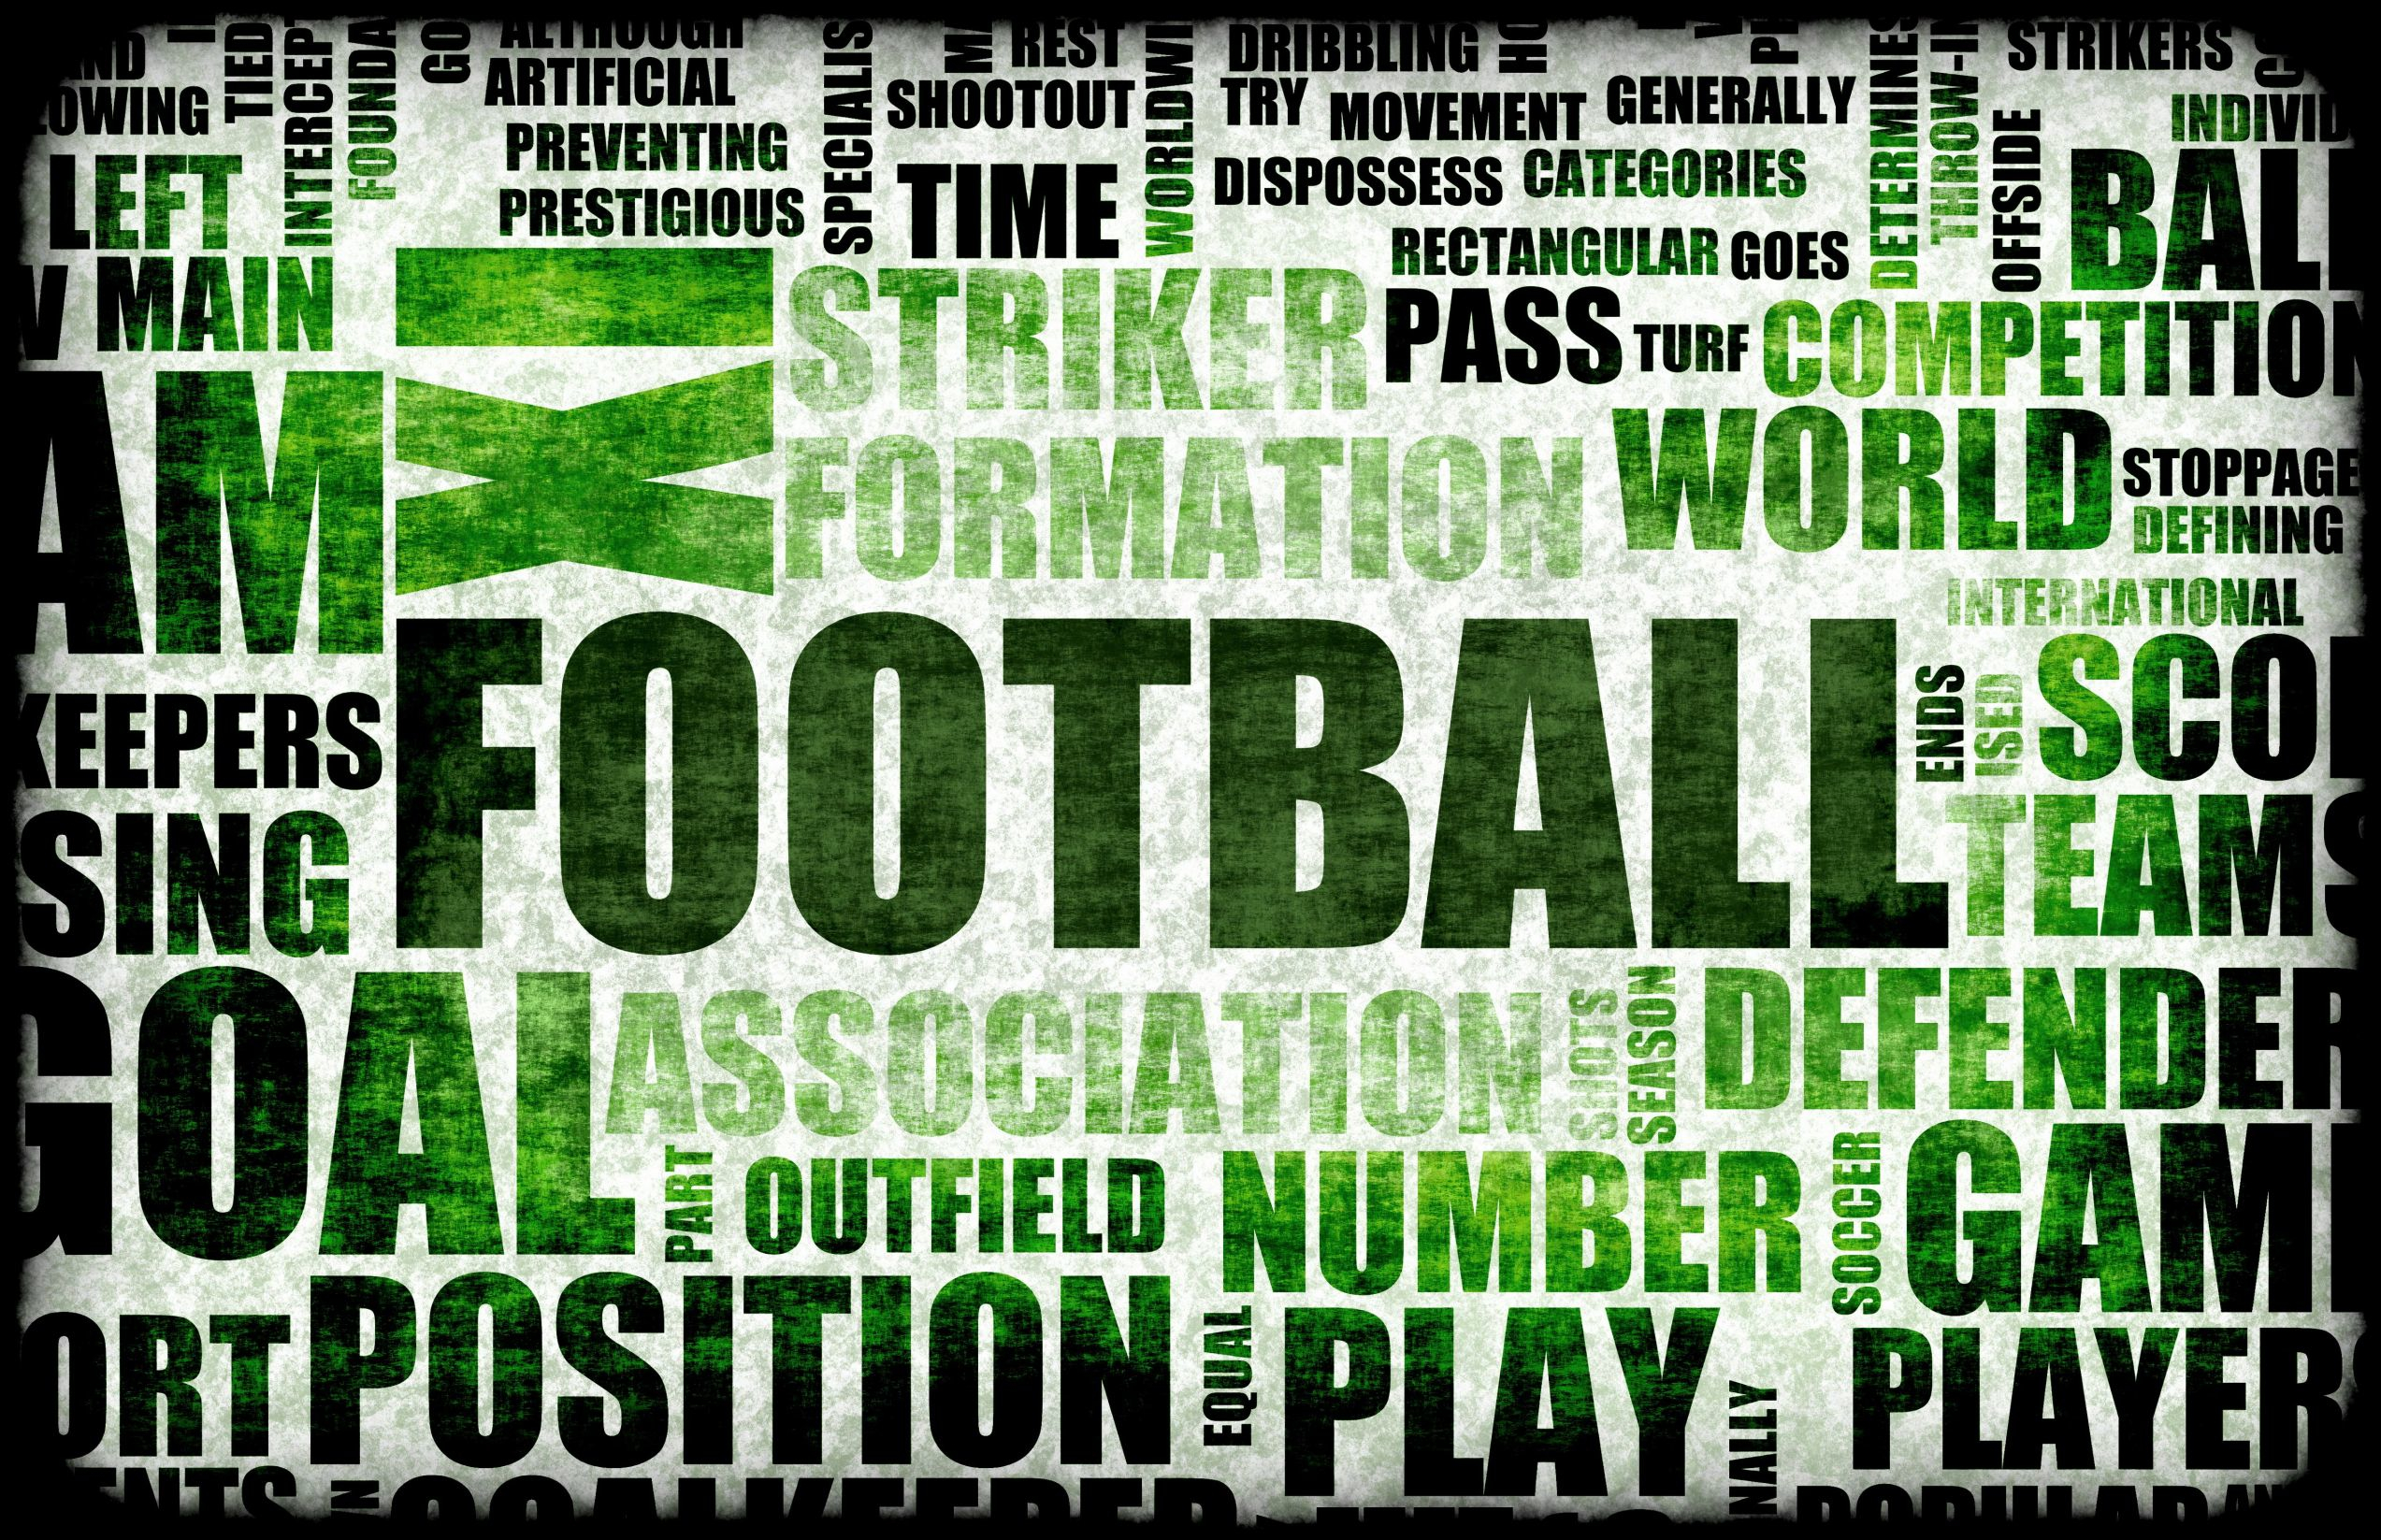 Football Glossary: To spark (a comeback / trouble)